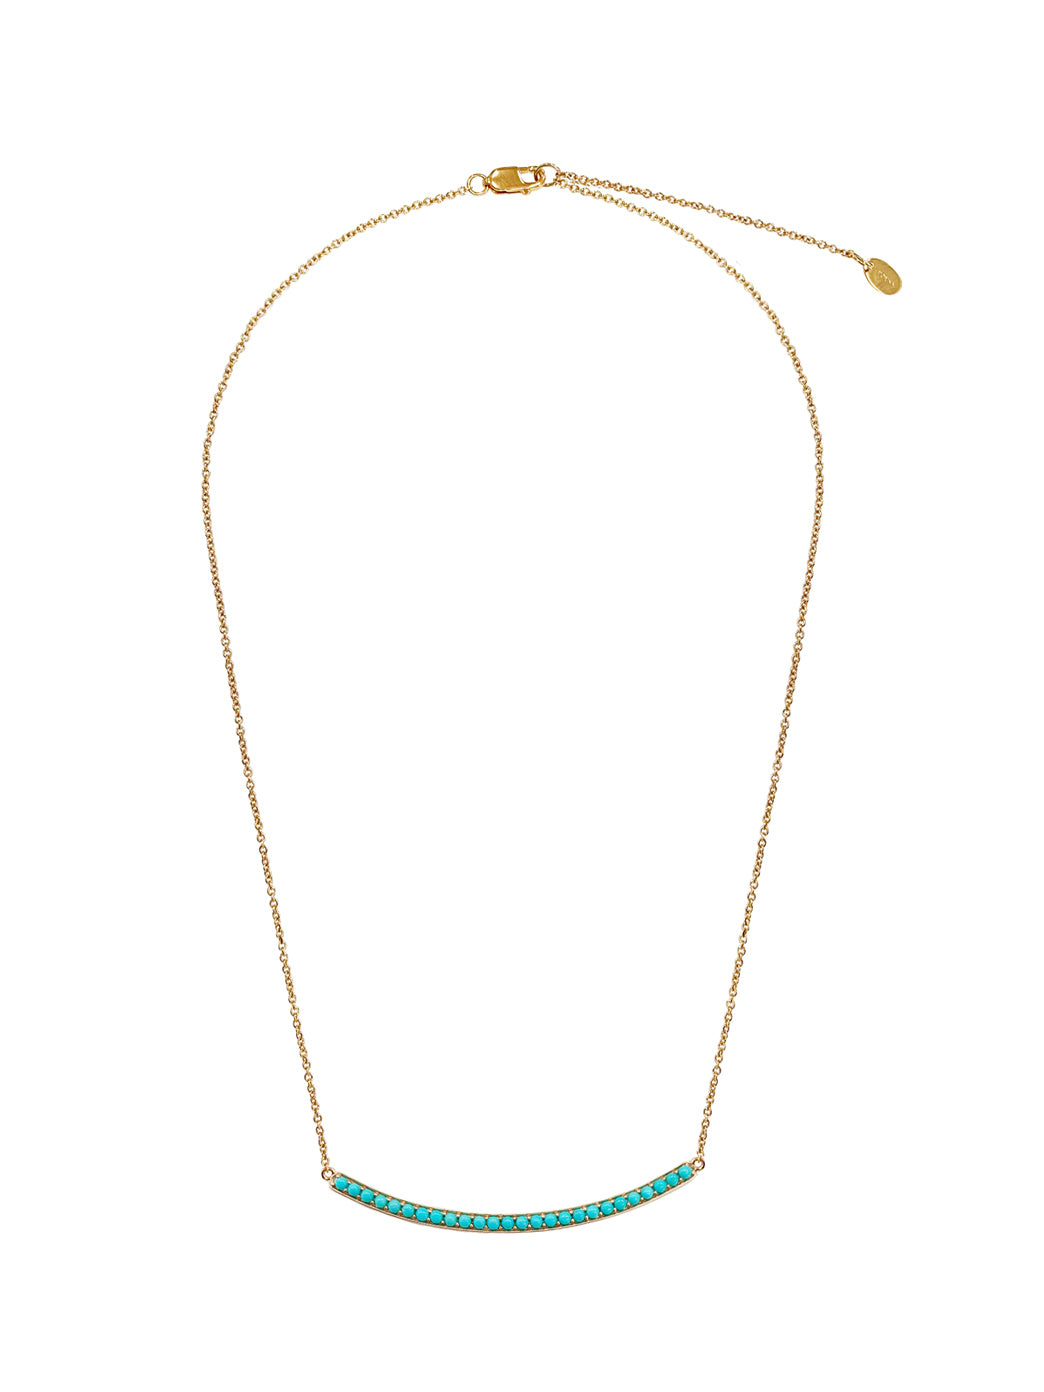 Fiorina Jewellery Gold Arc Necklace Turquoise